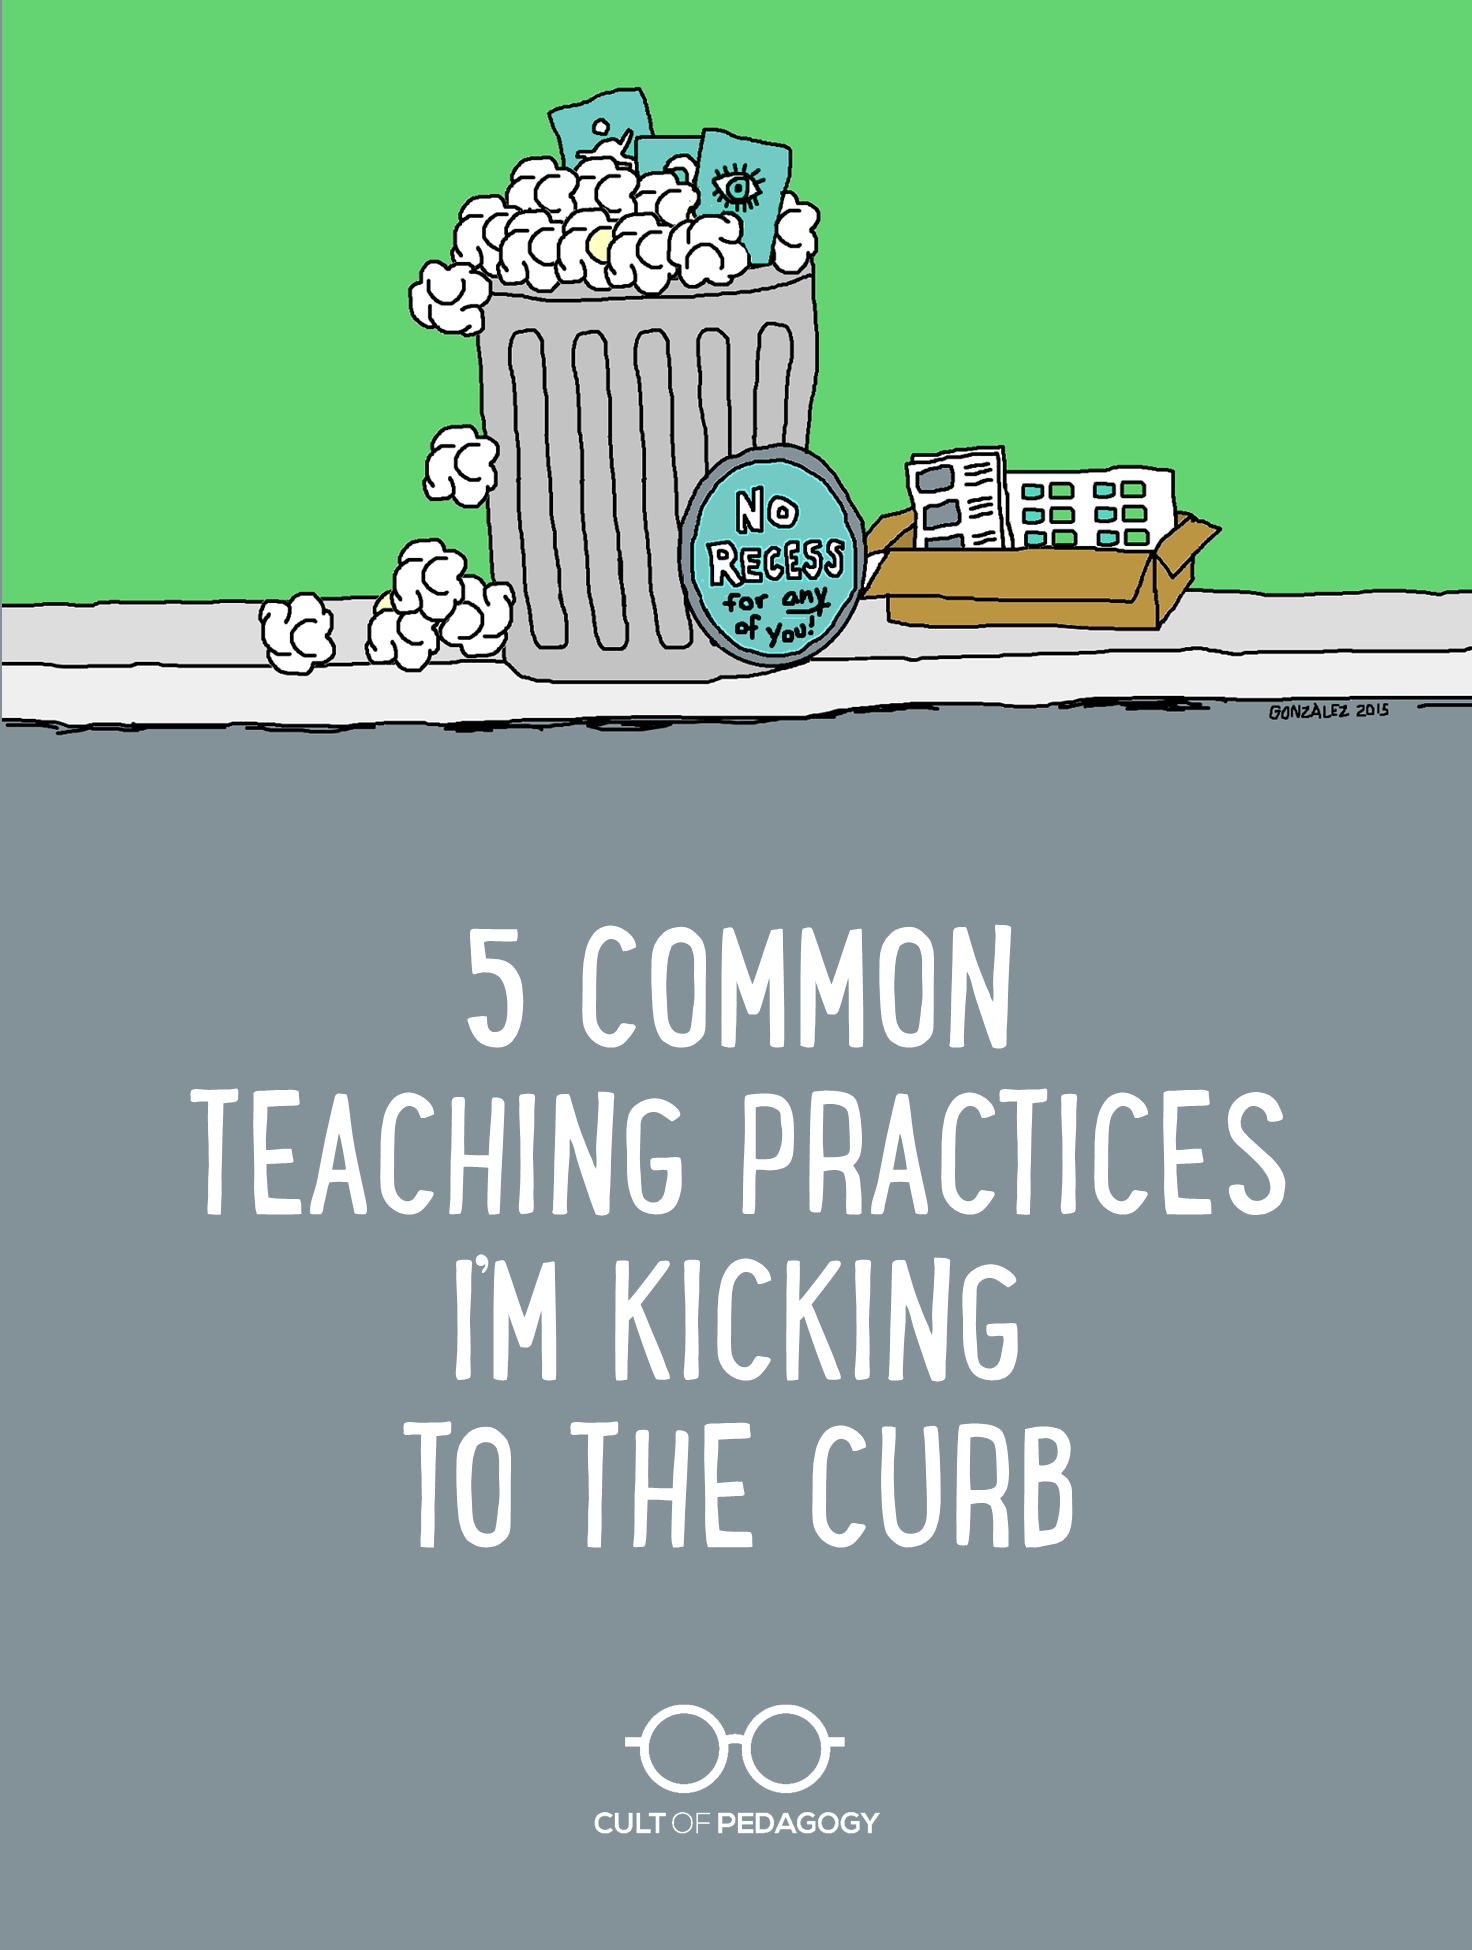 5 Teaching Practices I'm Kicking to the Curb | Cult of Pedagogy